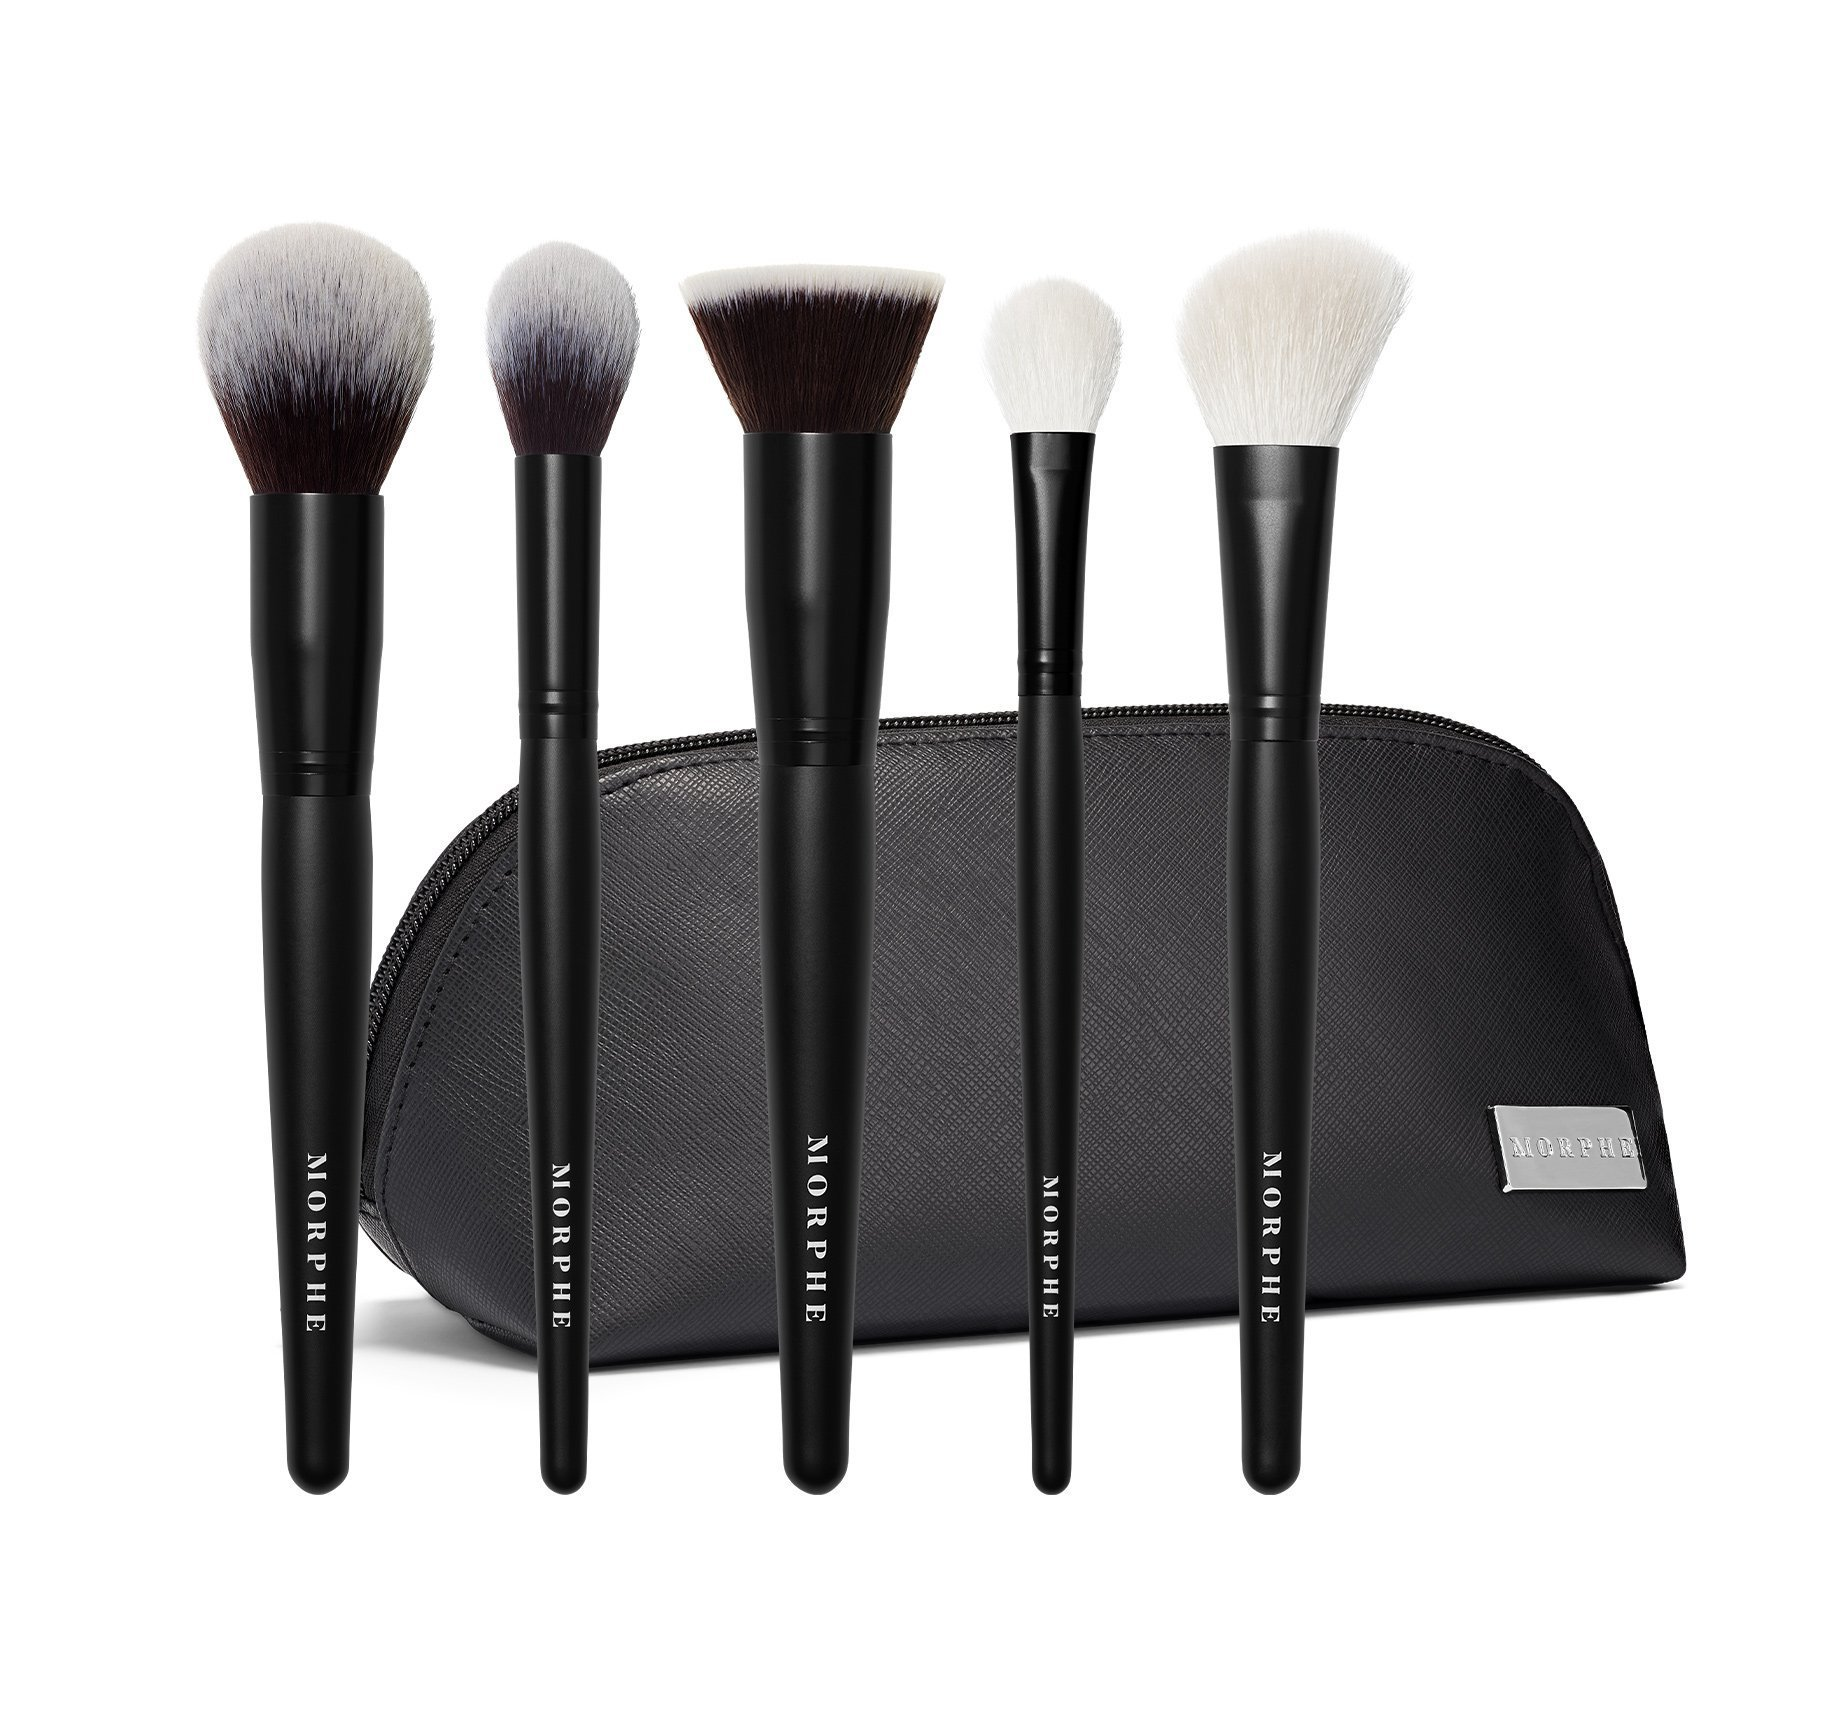 MORPHE FACE THE BEAT BRUSH COLLECTION